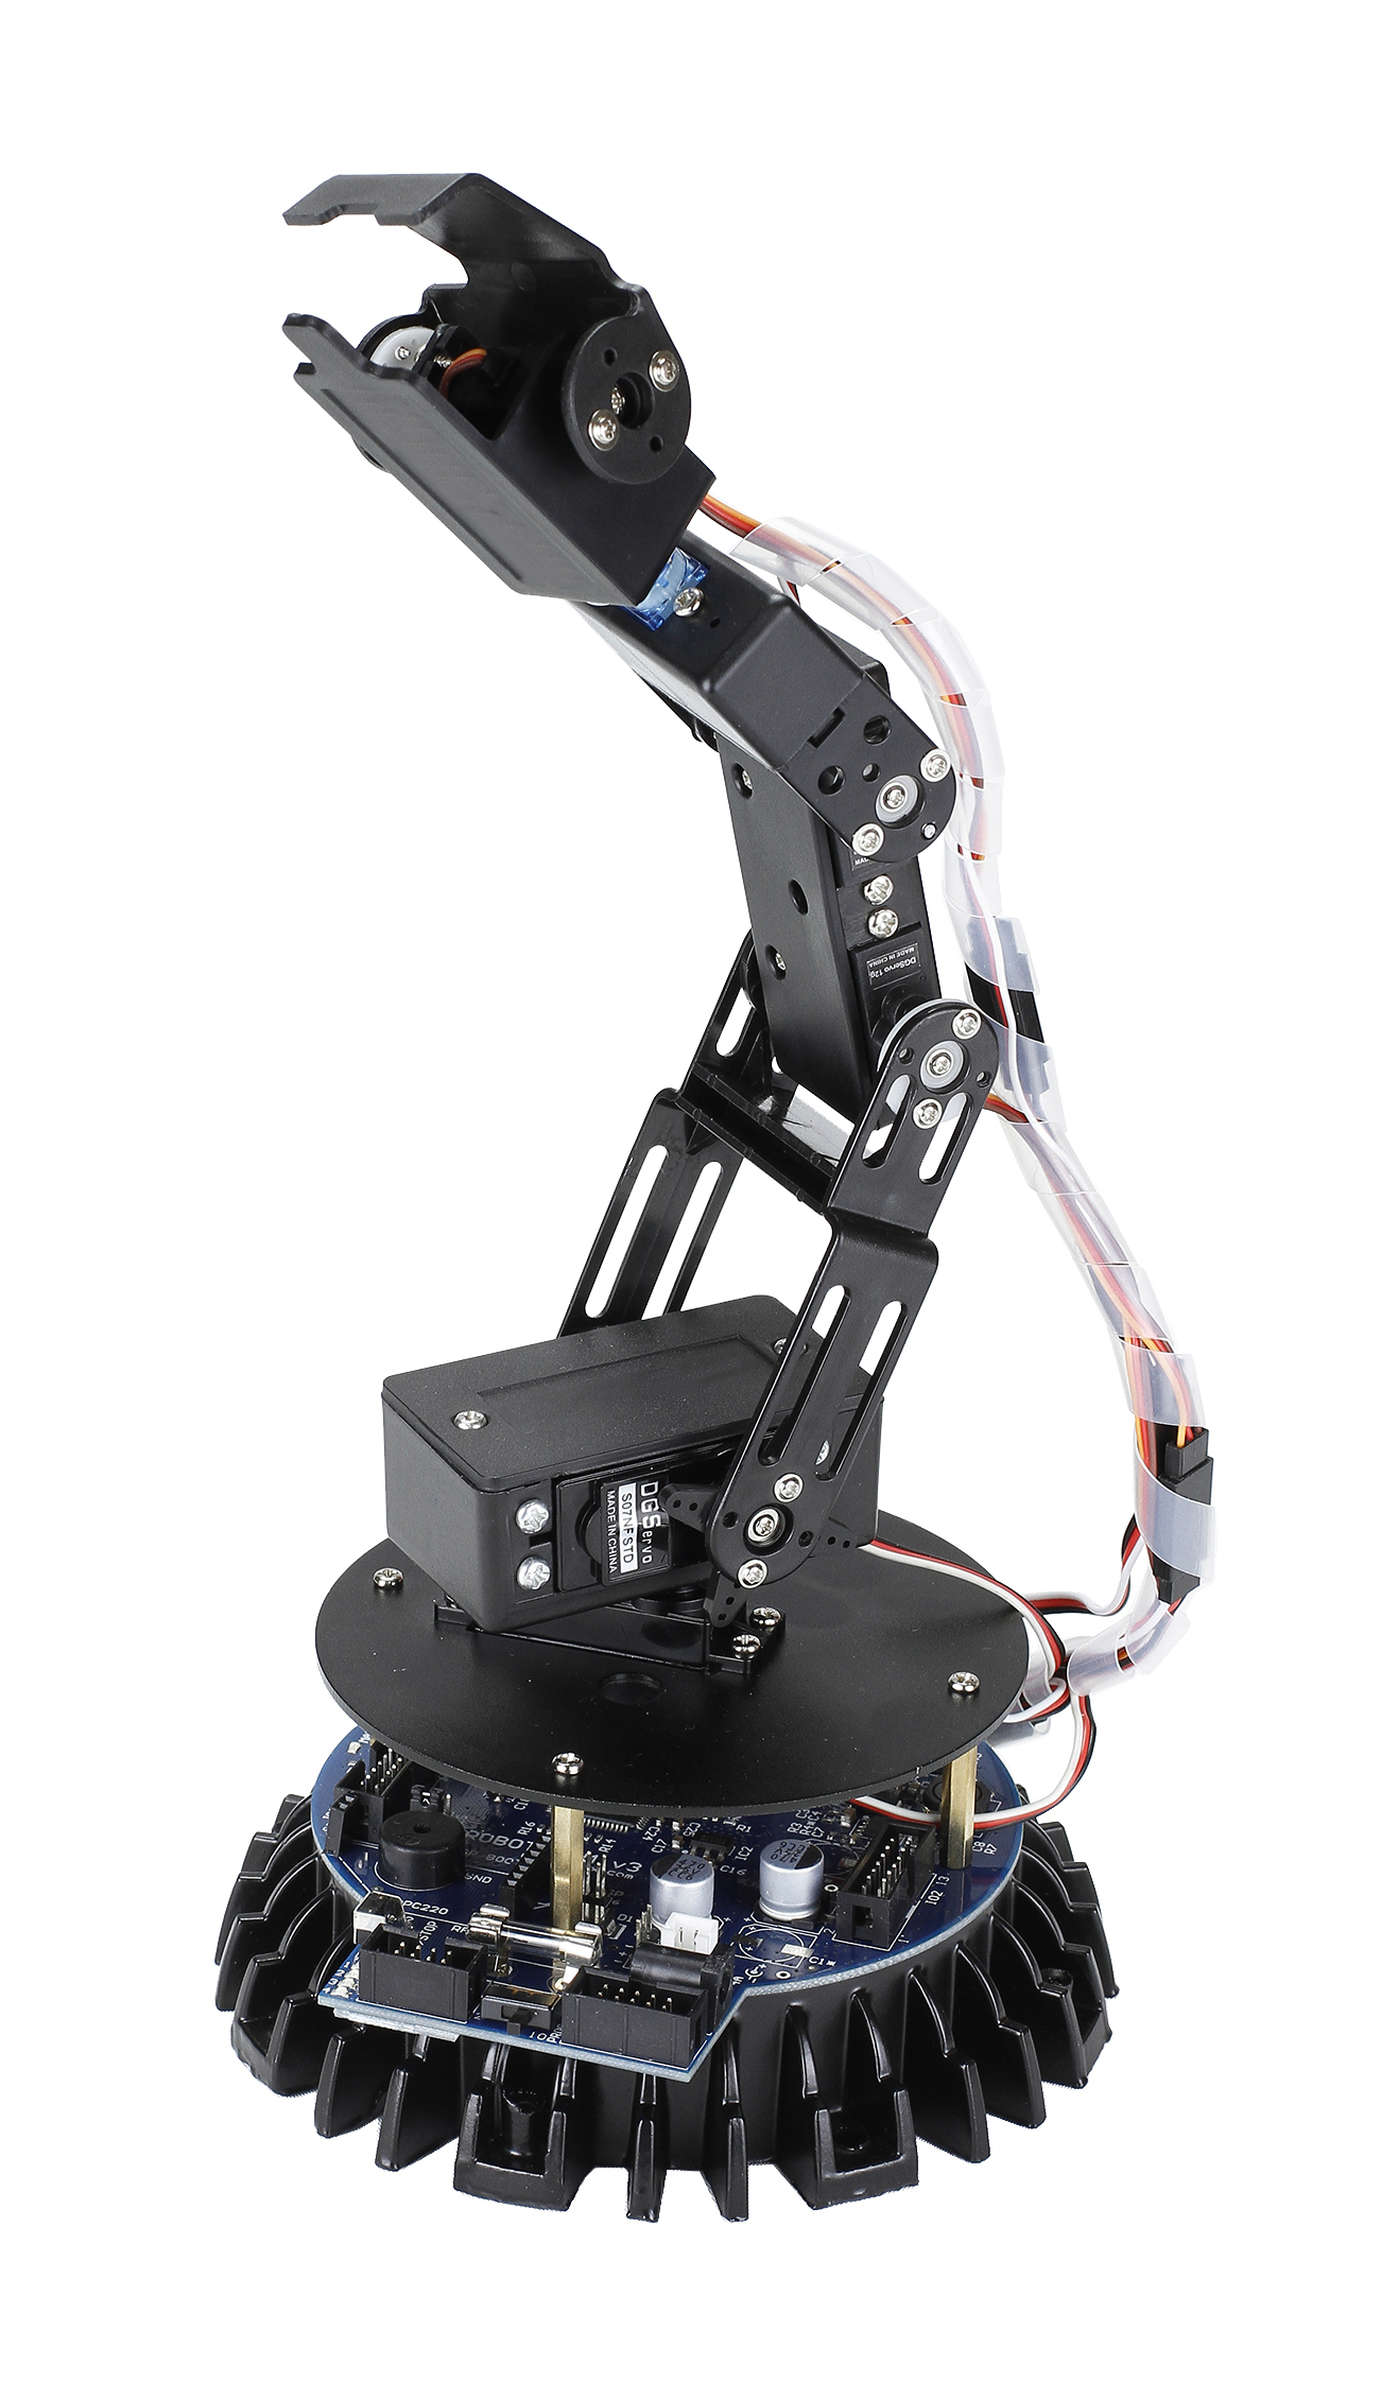 Global Specialties R680 Banshi Robotic Arm Photo